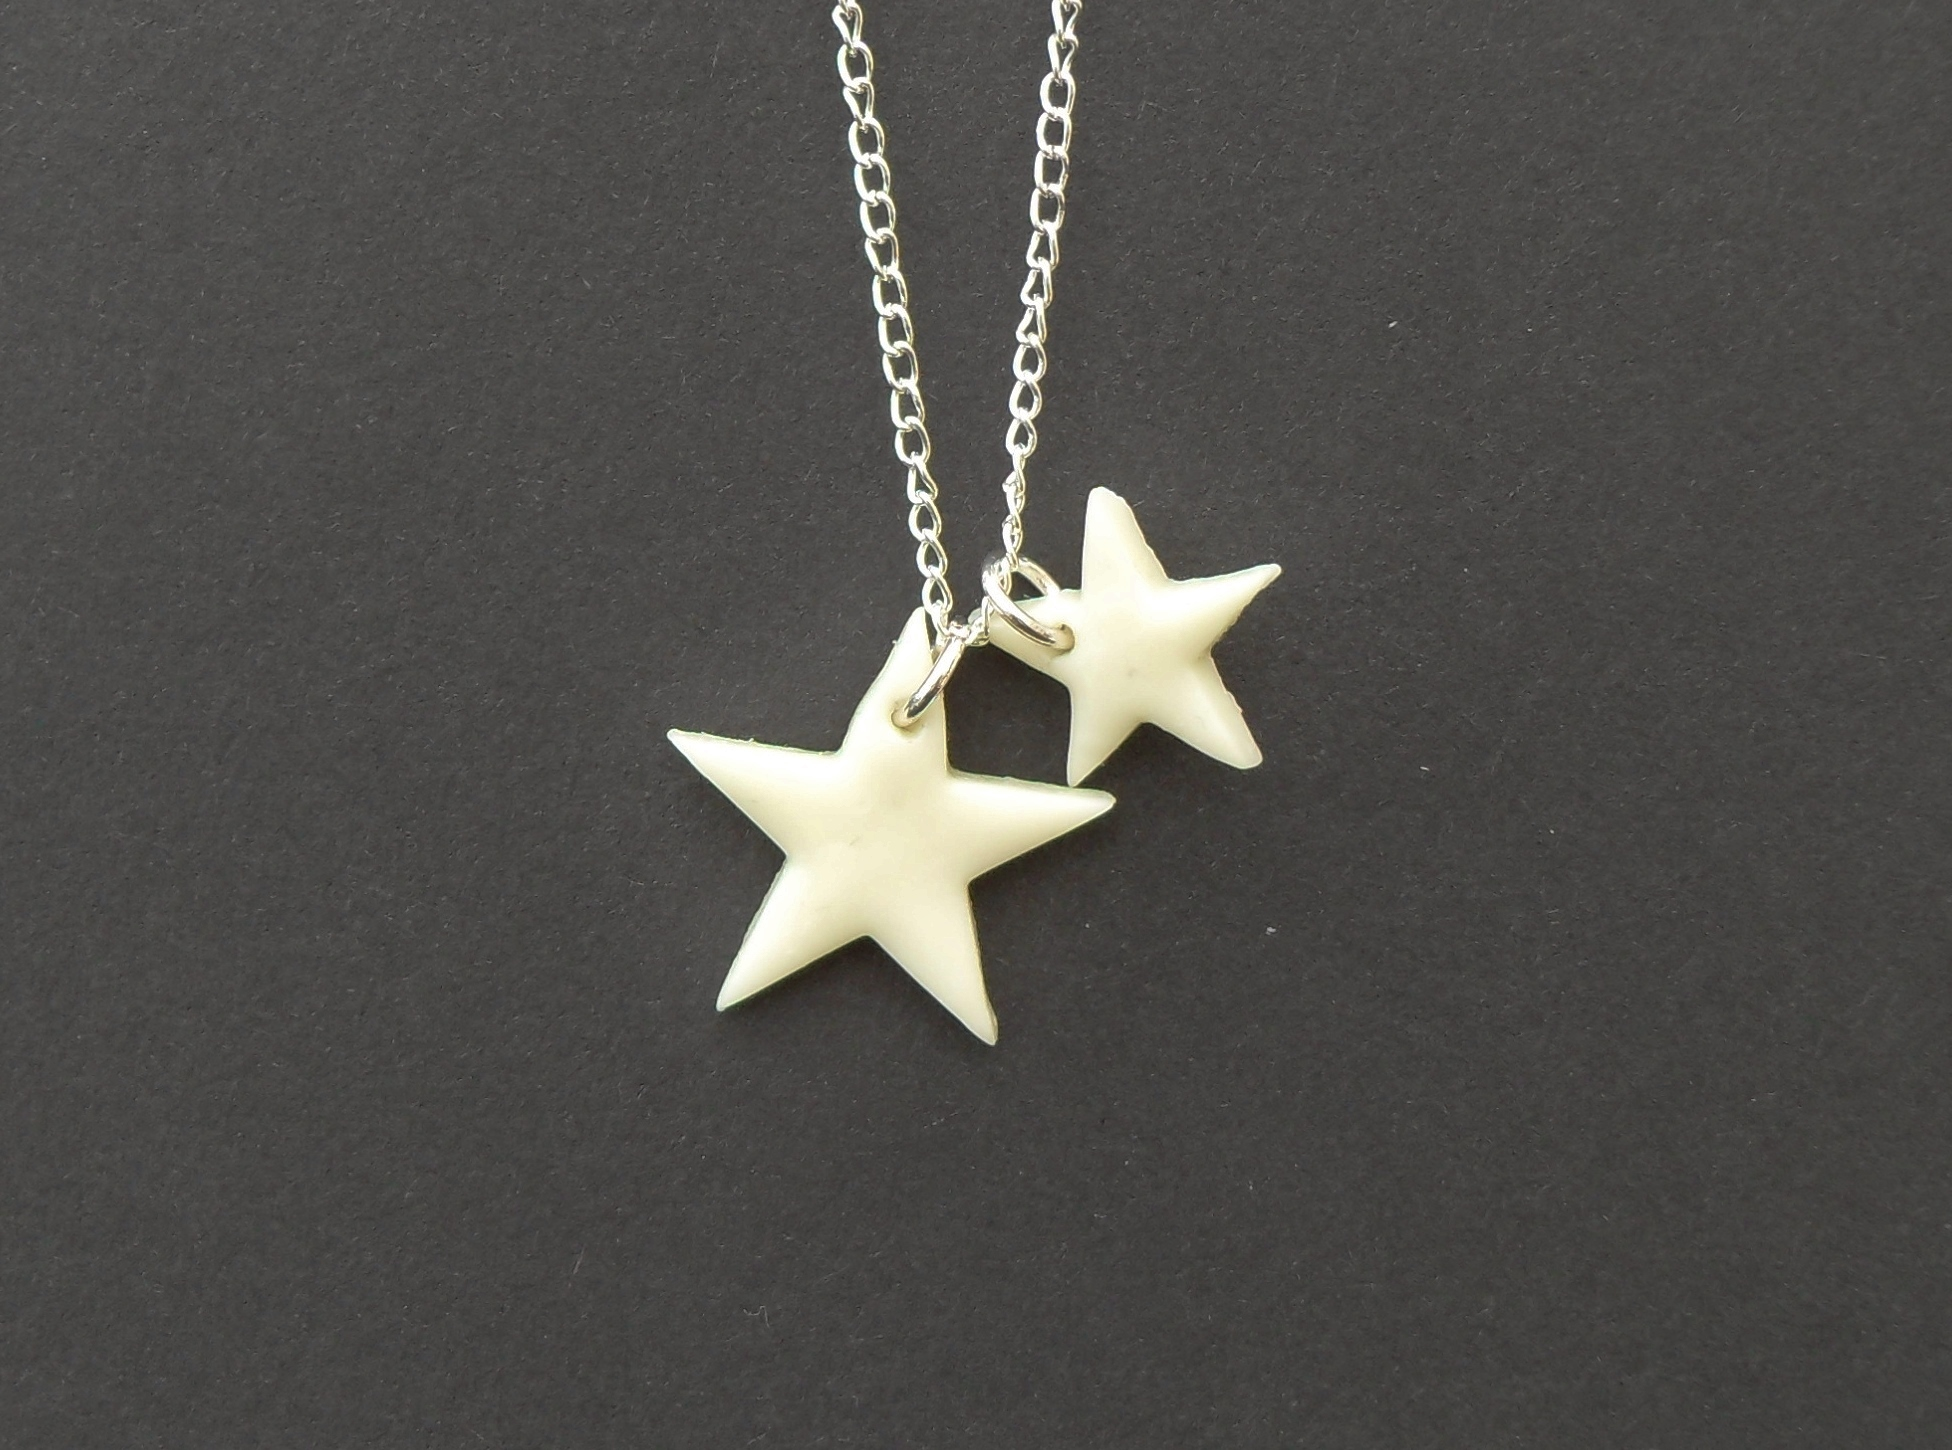 Halloween, spooky, creepy, cute, trick or treat, horror, handmade, novelty, season, kitsch, fan, jewellery, accessories, quirky, glow in the dark, aluminous, star, charm, necklace,